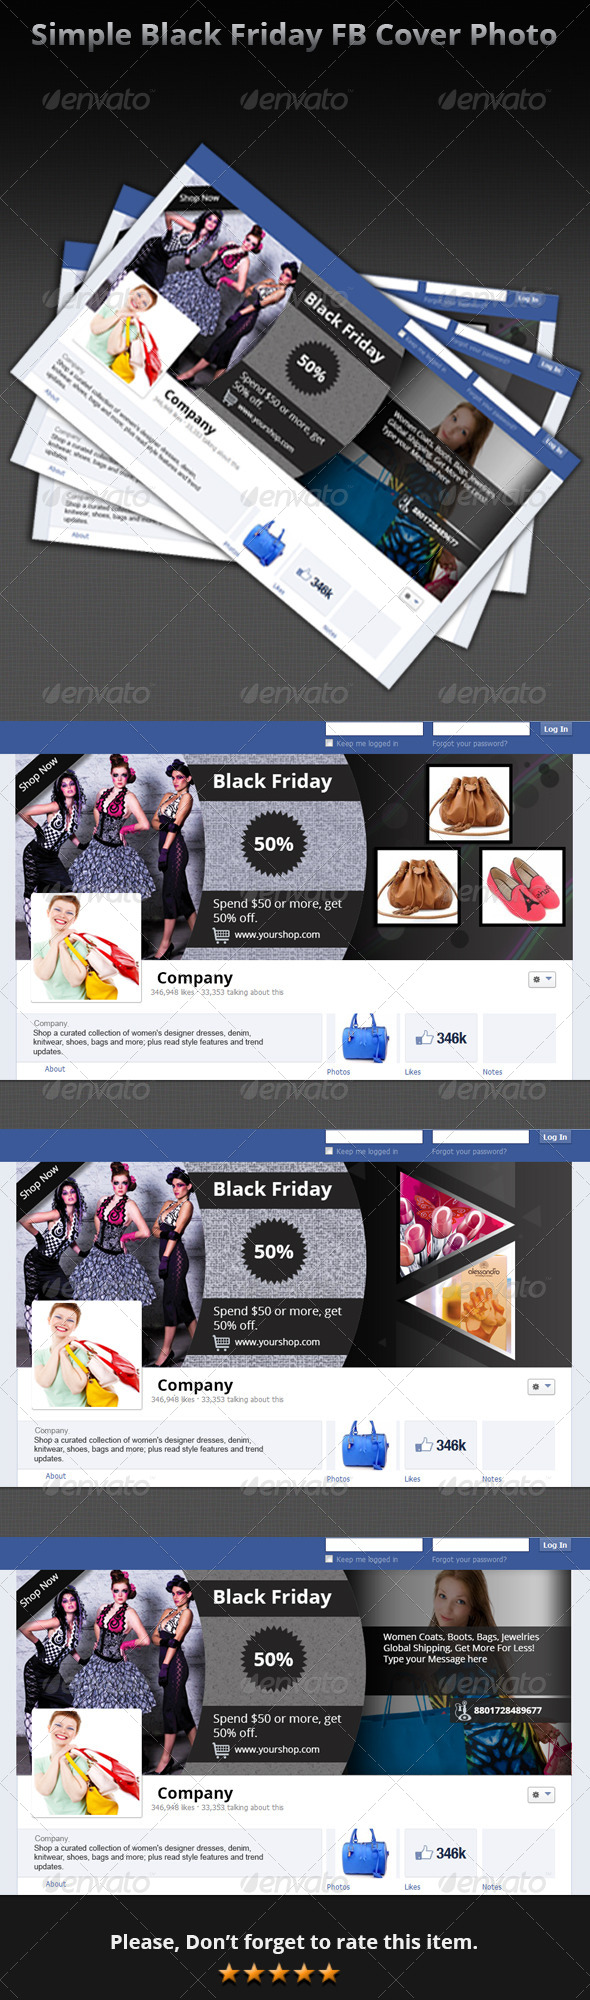 Simple Black Friday FB Cover Photo - Facebook Timeline Covers Social Media